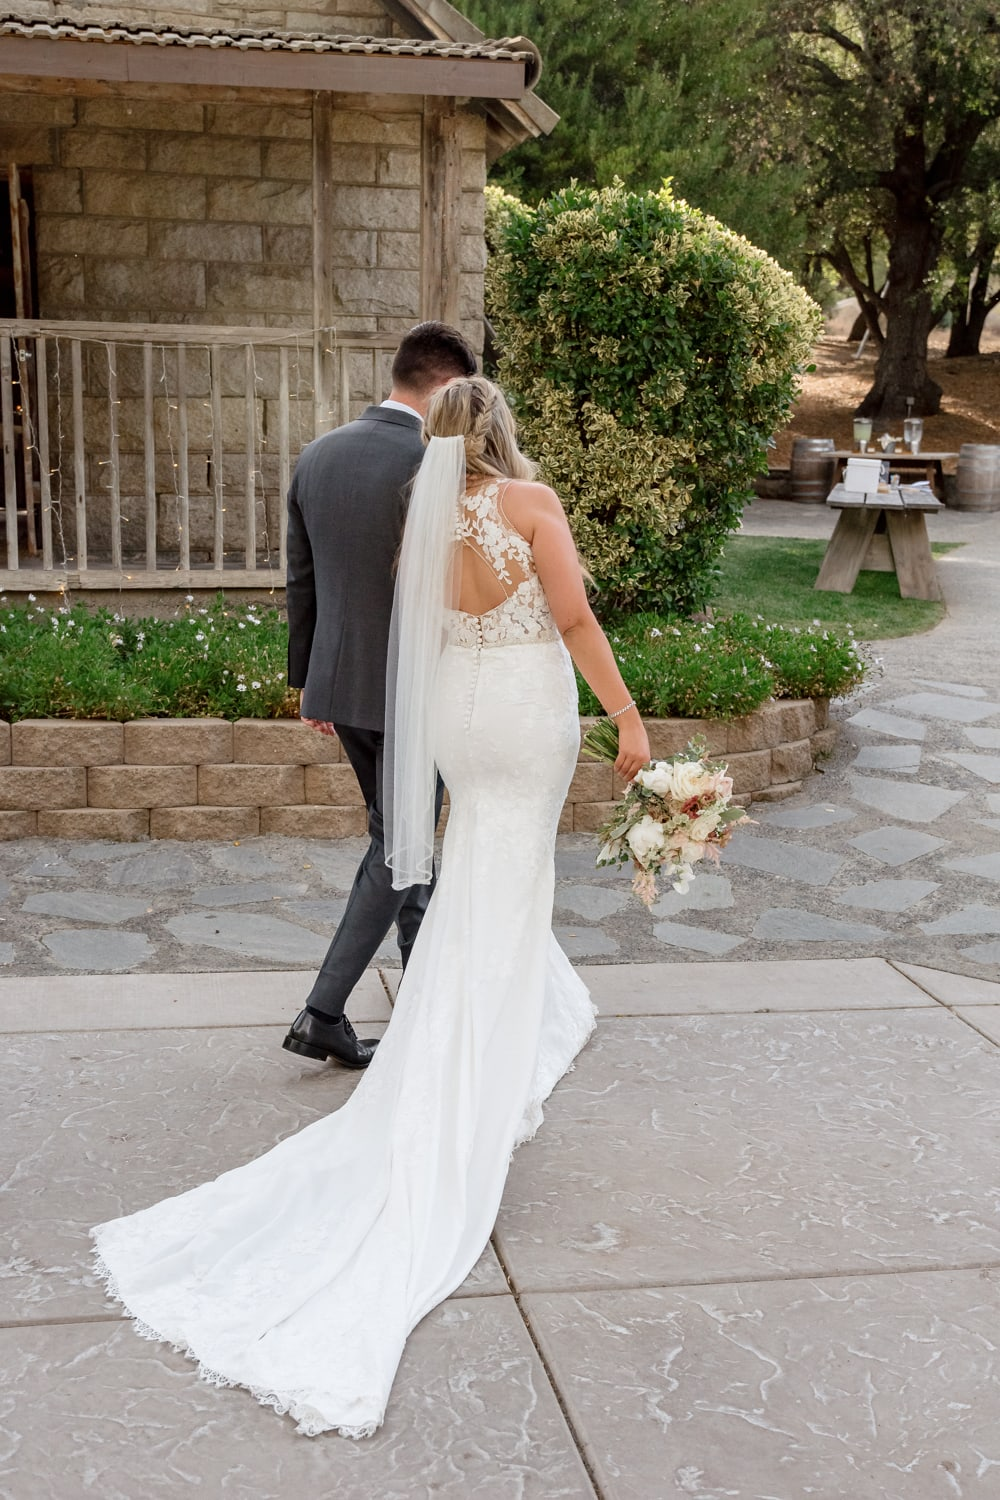 Couple at The Stone House in Temecula, CA